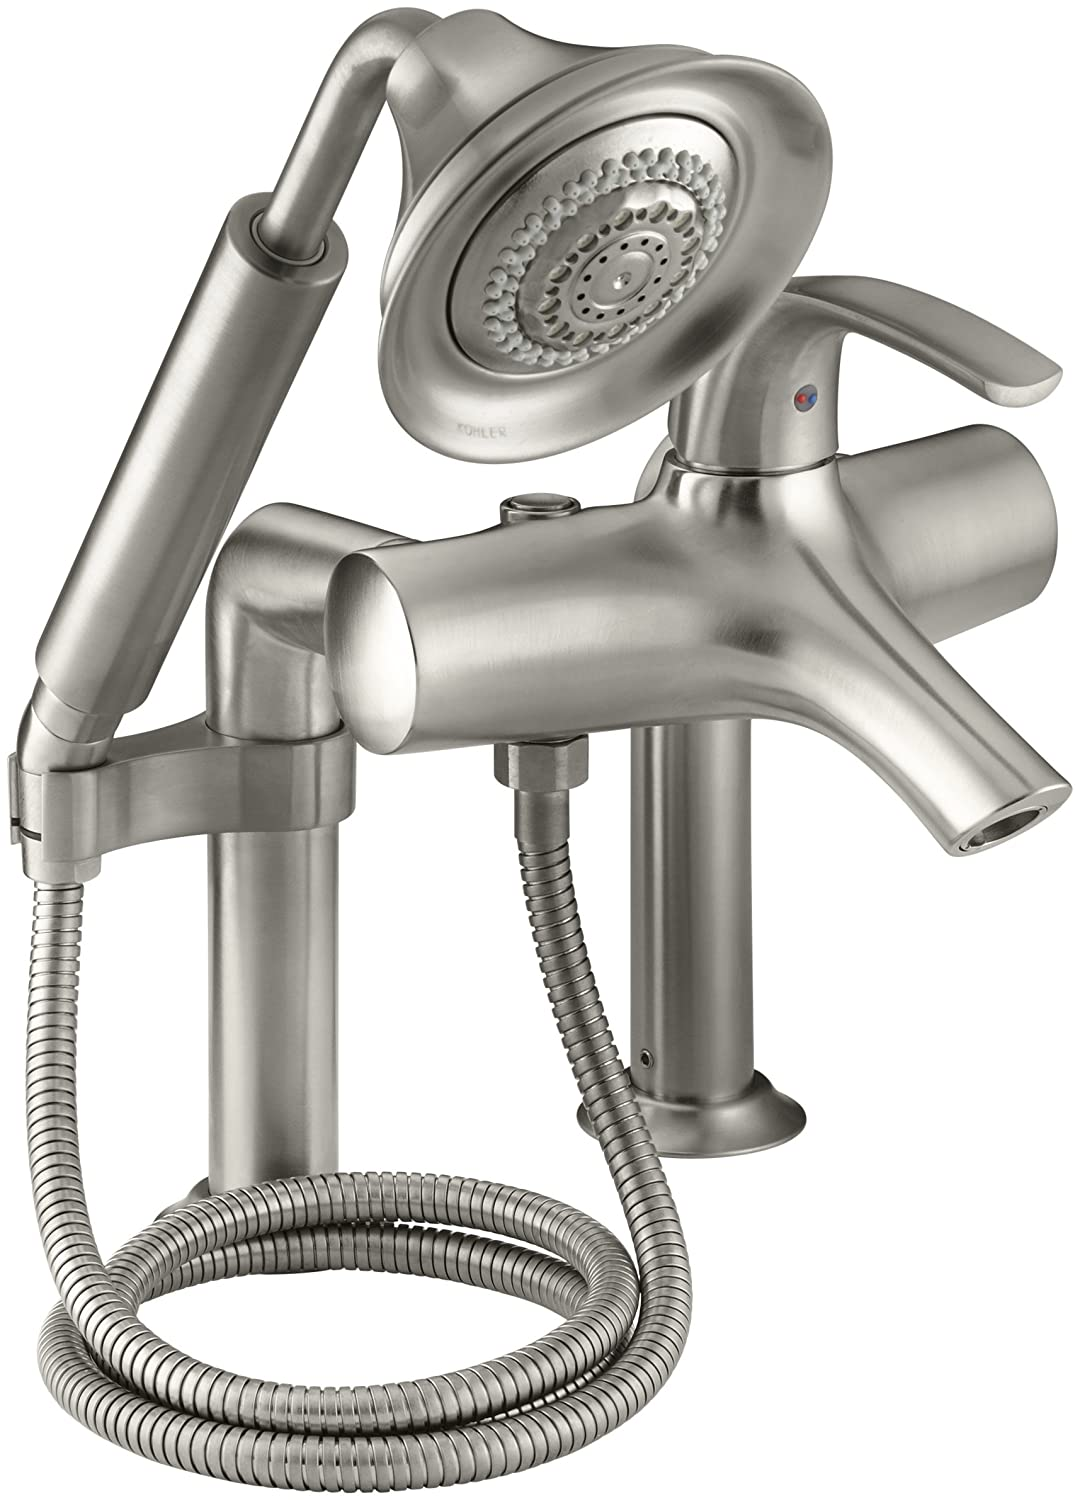 kohler roman tub faucet with hand shower. KOHLER K 18486 4 CP Symbol Roman Bath Filler  Polished Chrome Bathtub And Showerhead Faucet Systems Amazon com